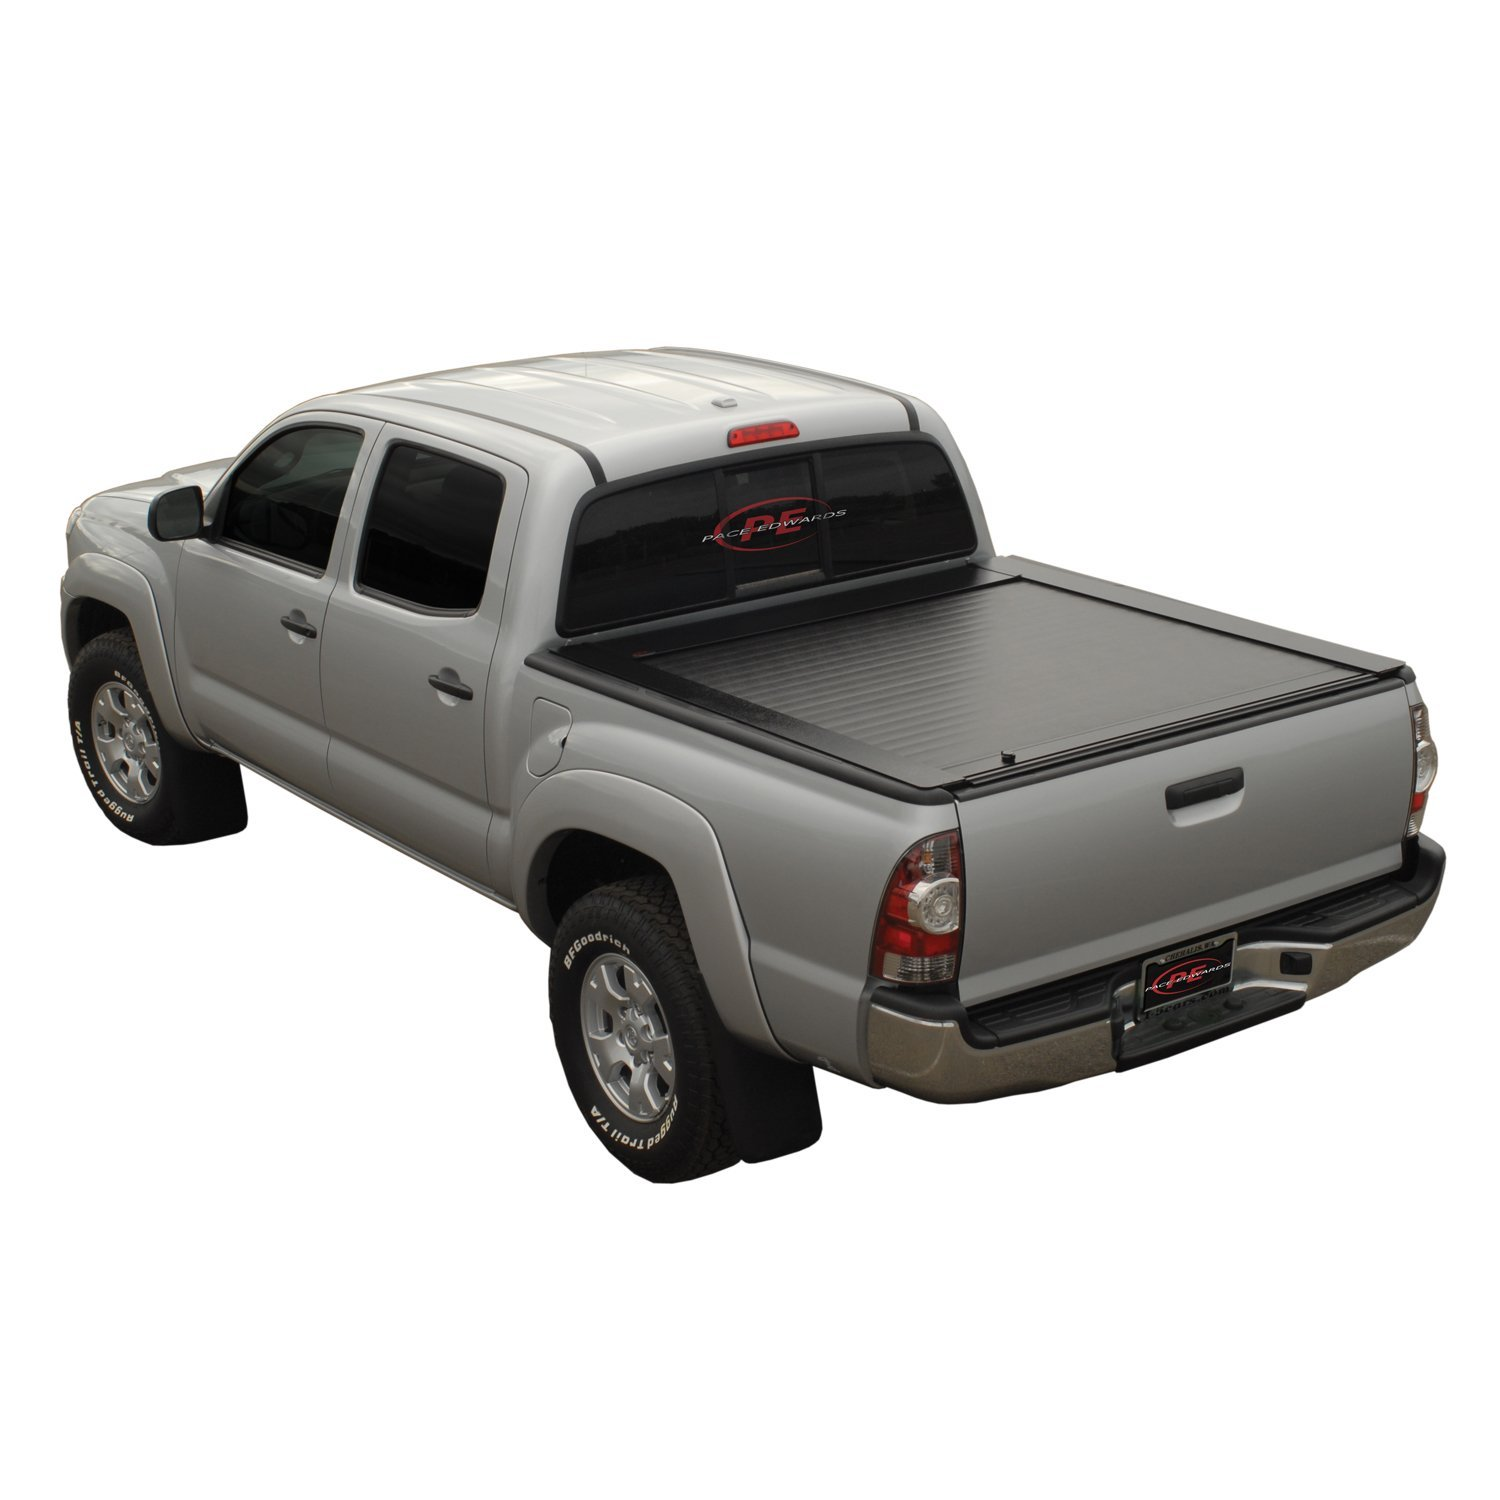 Amazon.com: Pace Edwards TR5050 JackRabbit Retractable Tonneau Rail: Automotive